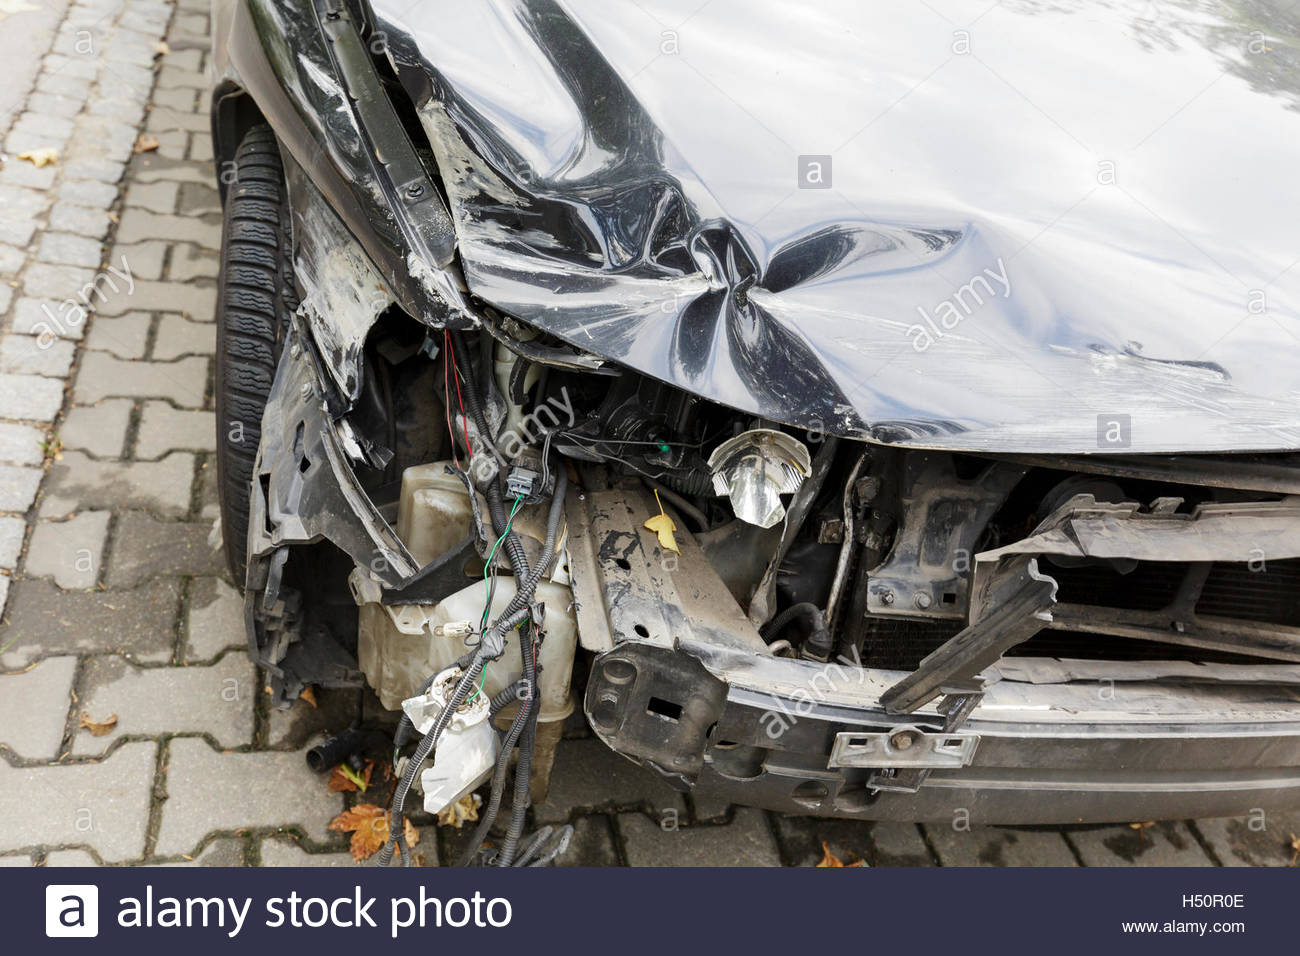 Crashed the front of a car - Stock Image